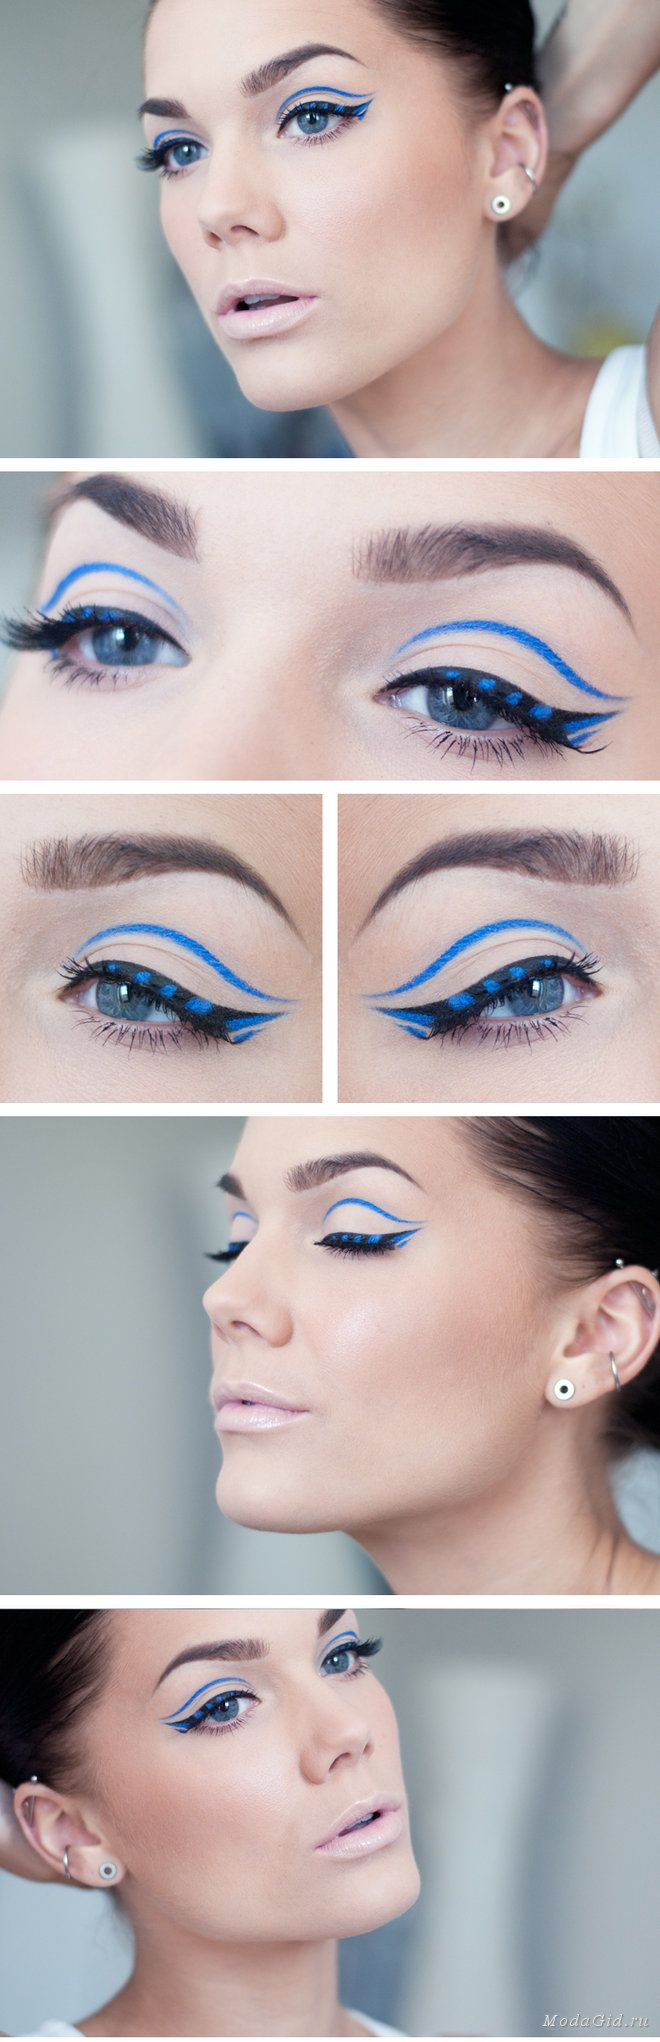 ?????????? ?? ??????????? ????? ? ?????? ????? ?? ????????: +7 925 700 71 61.   www.hochu-narastit-volosy.ru     ???? ????????? ??????! ?????? ???????? ??????? ????? (Best Eyeliner For Winged)